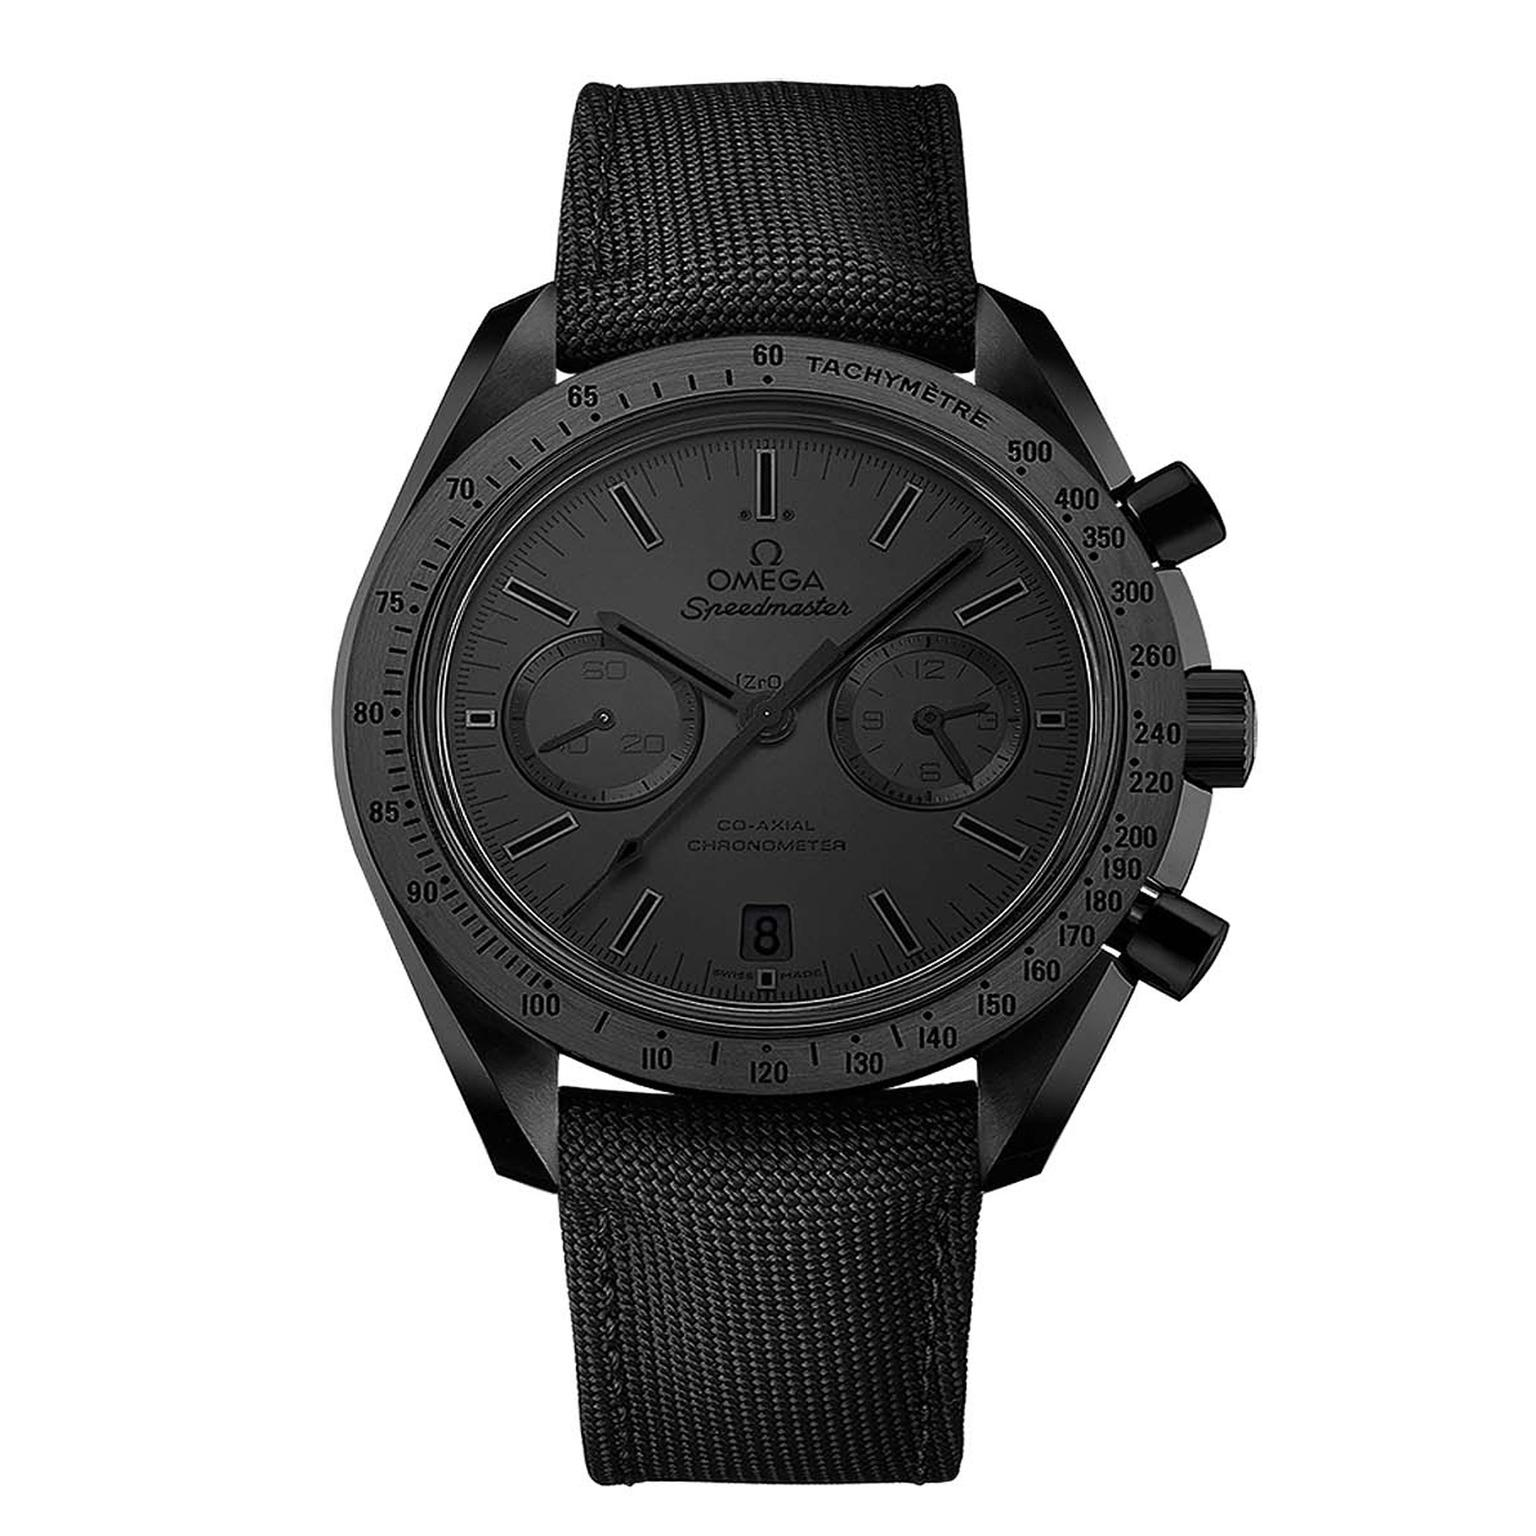 Omega Dark Side of the Moon watch in Black Black_zoom